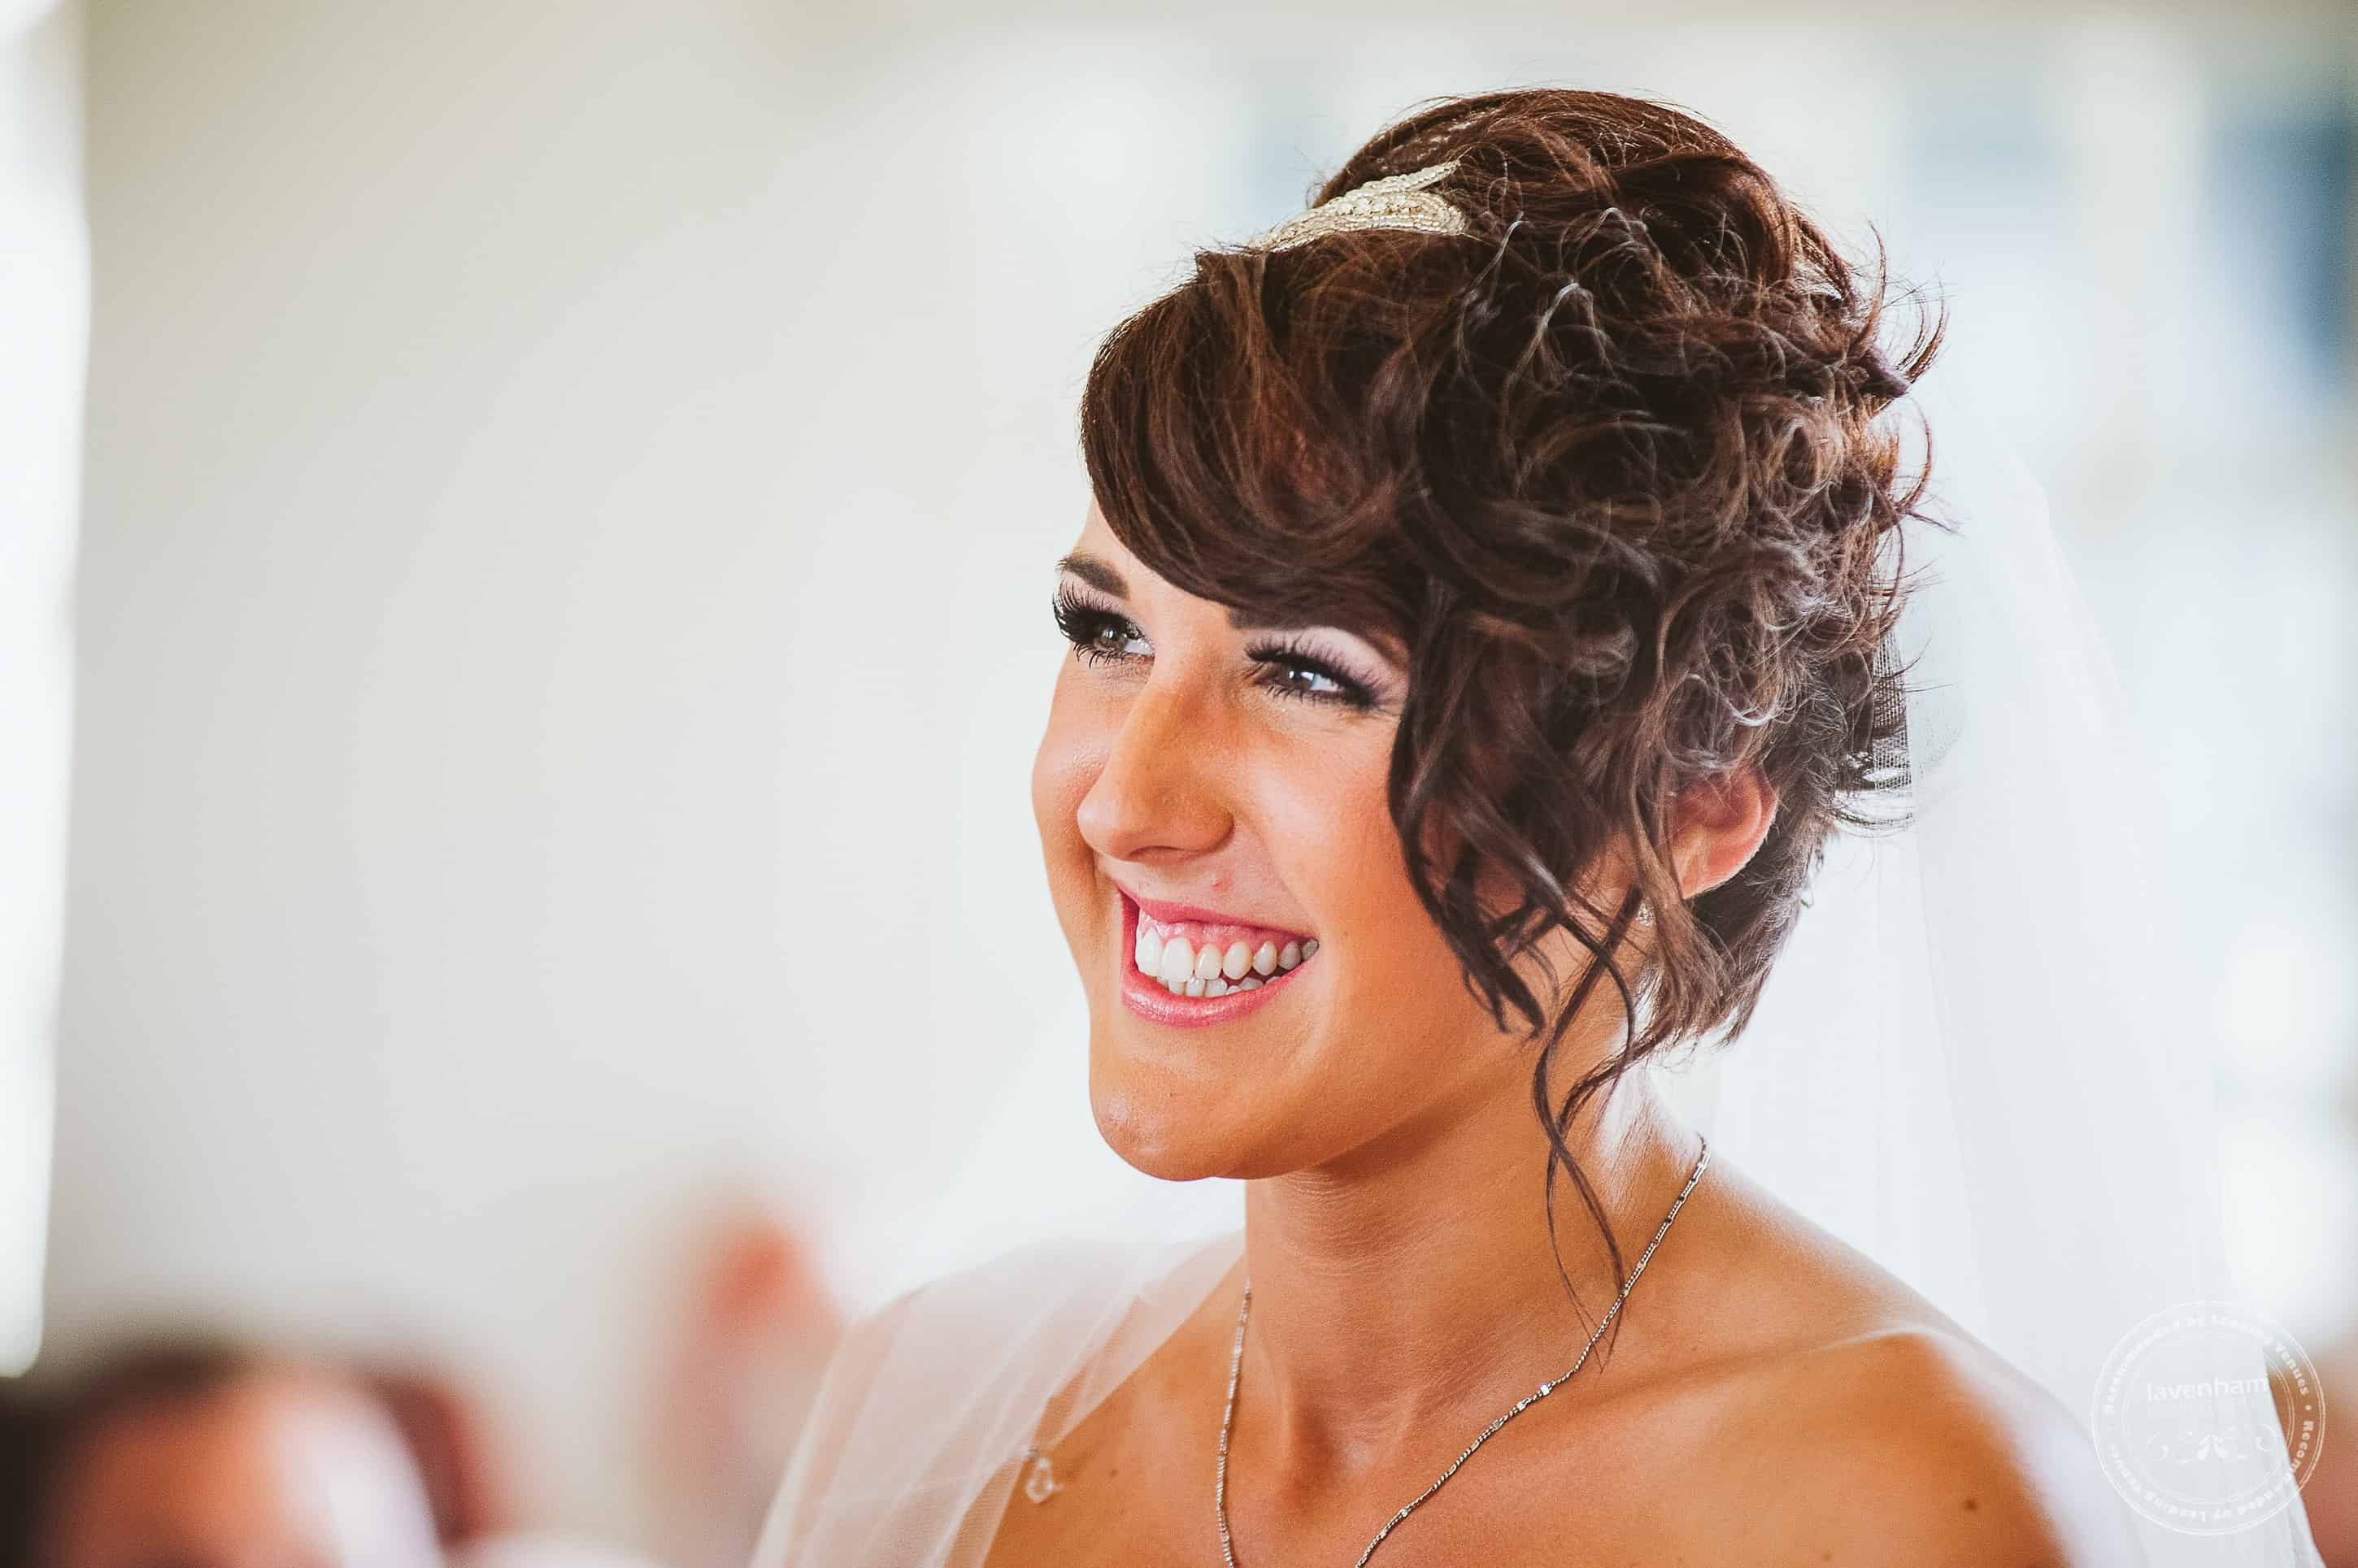 250812 Thorpeness Suffolk Wedding Photography 038